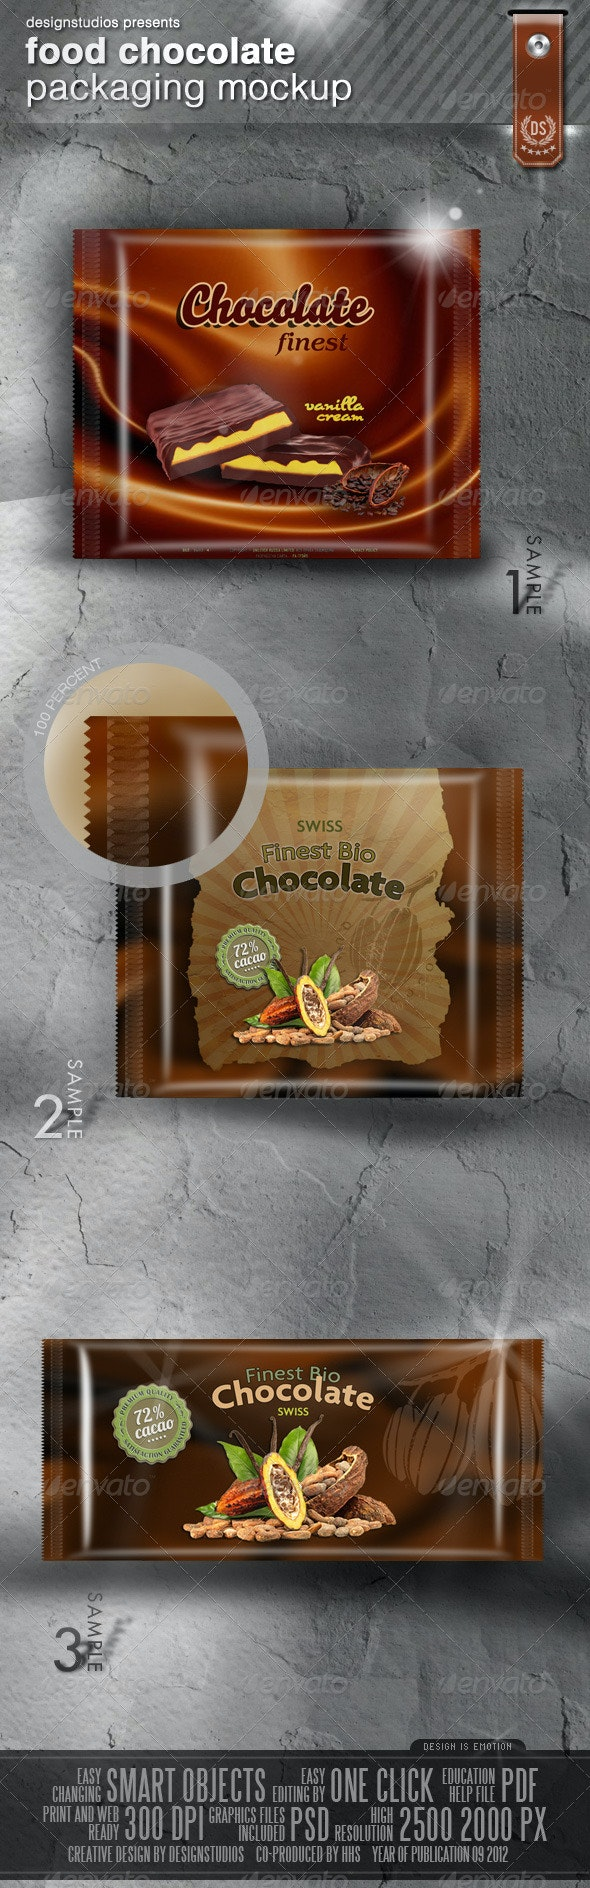 Food (Chocolate) Packaging Mock-Up - Food and Drink Packaging